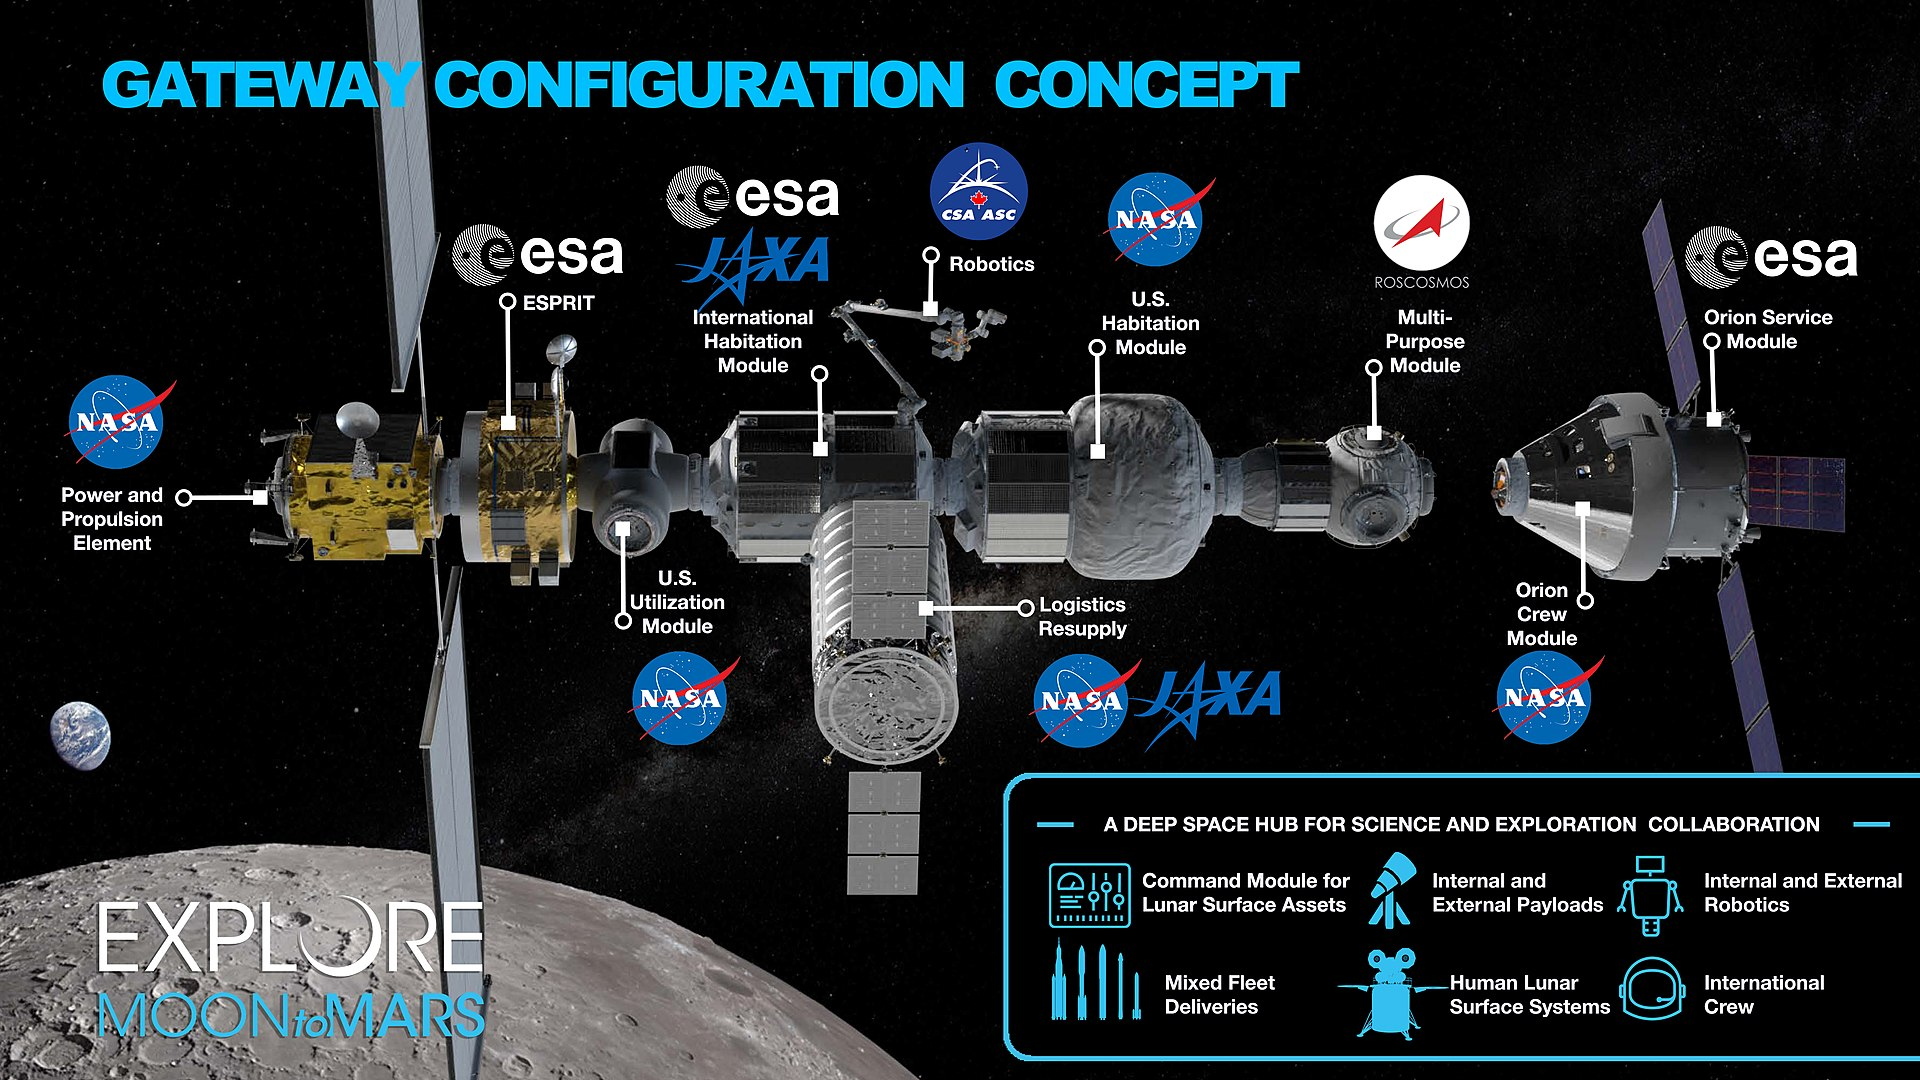 Lunar Orbit Gateway Configuration